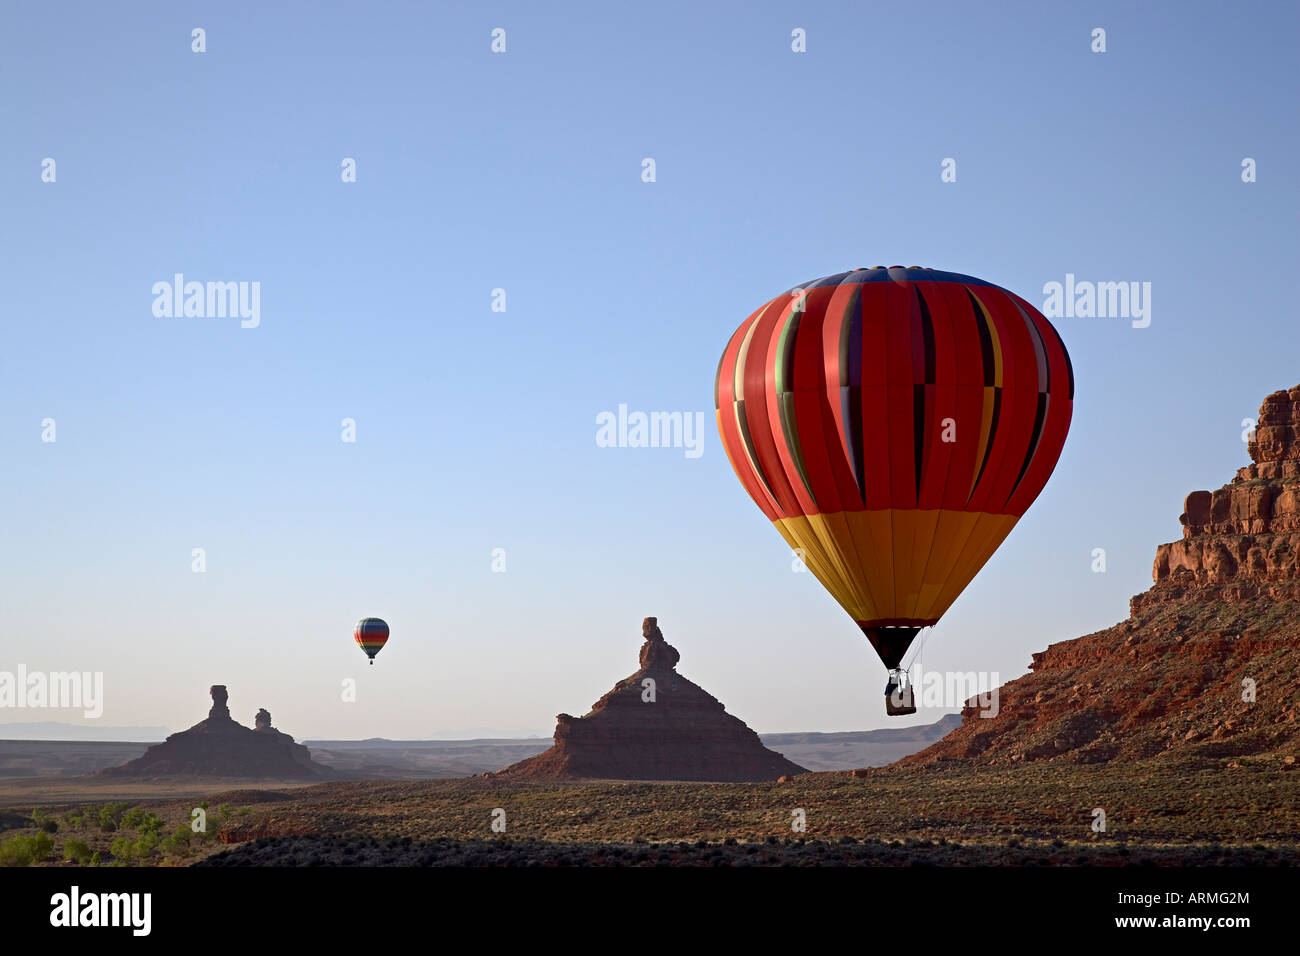 Formations in Valley of the Gods with two hot air balloons, near Mexican Hat, Utah, United States of America, North - Stock Image